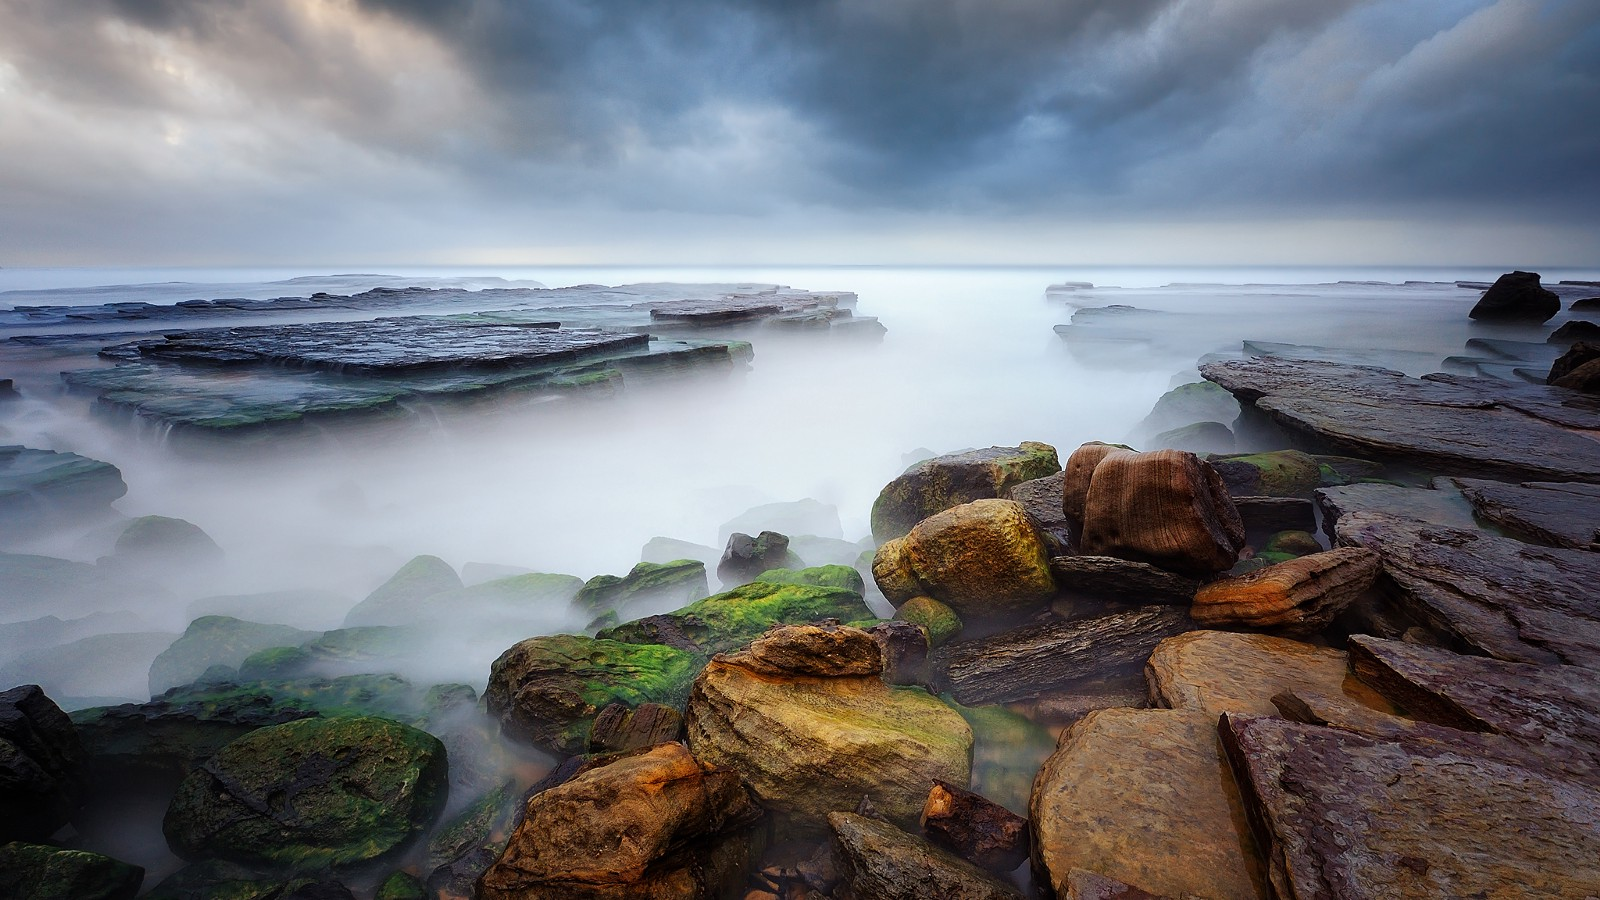 Turimetta Beach, New South Wales, Australia